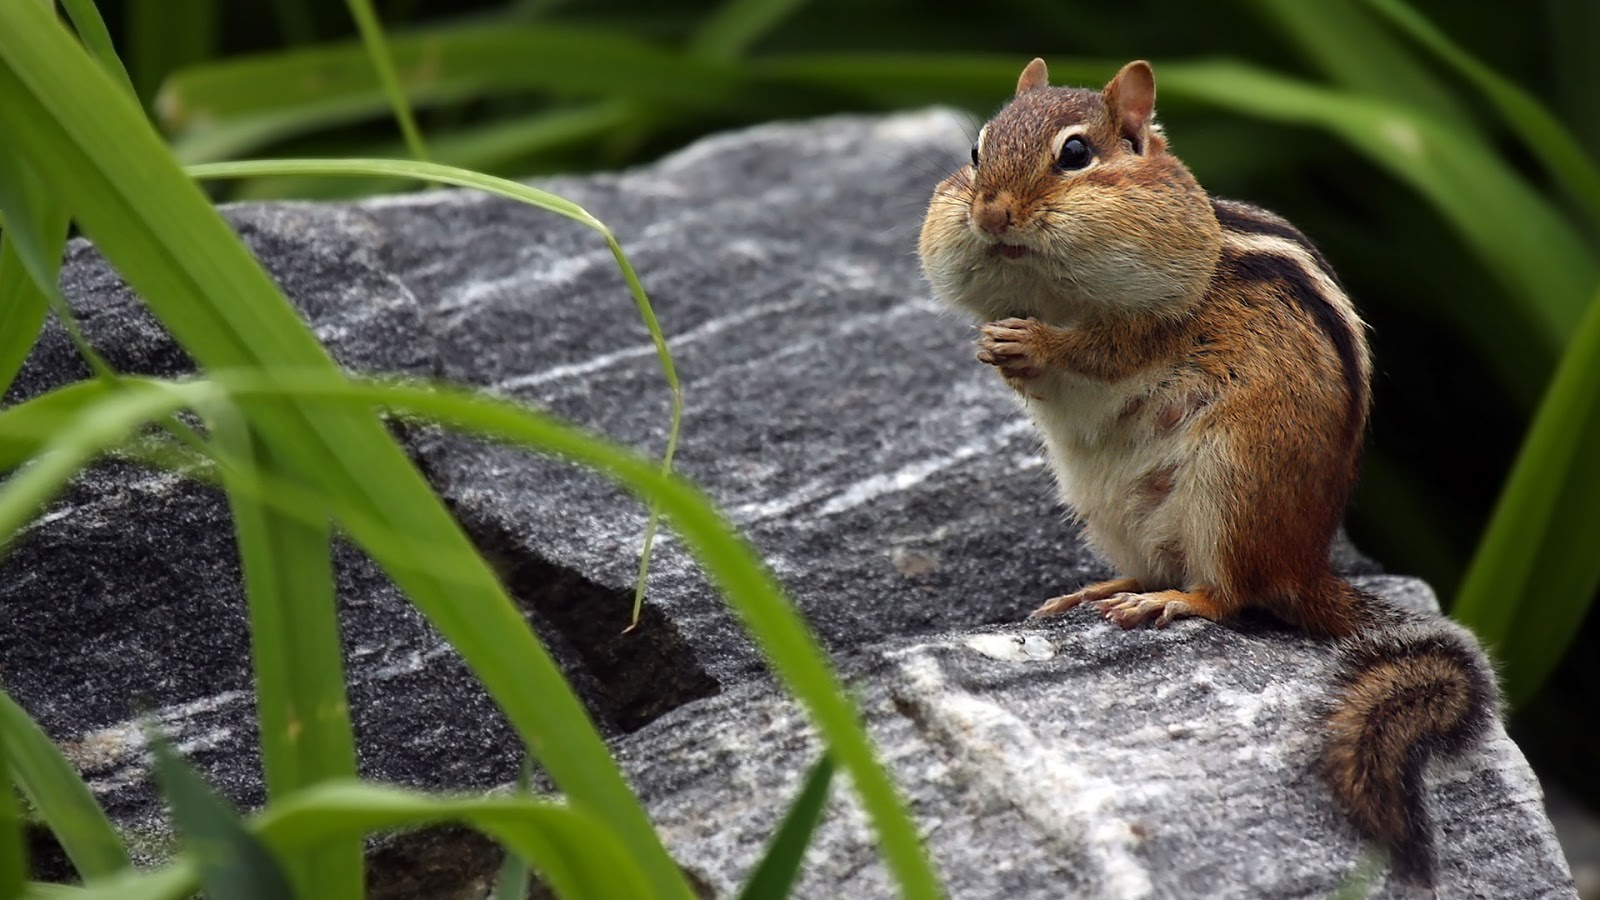 Chipmunk storing food in his cheeks © mlorenzphotography/Getty Images